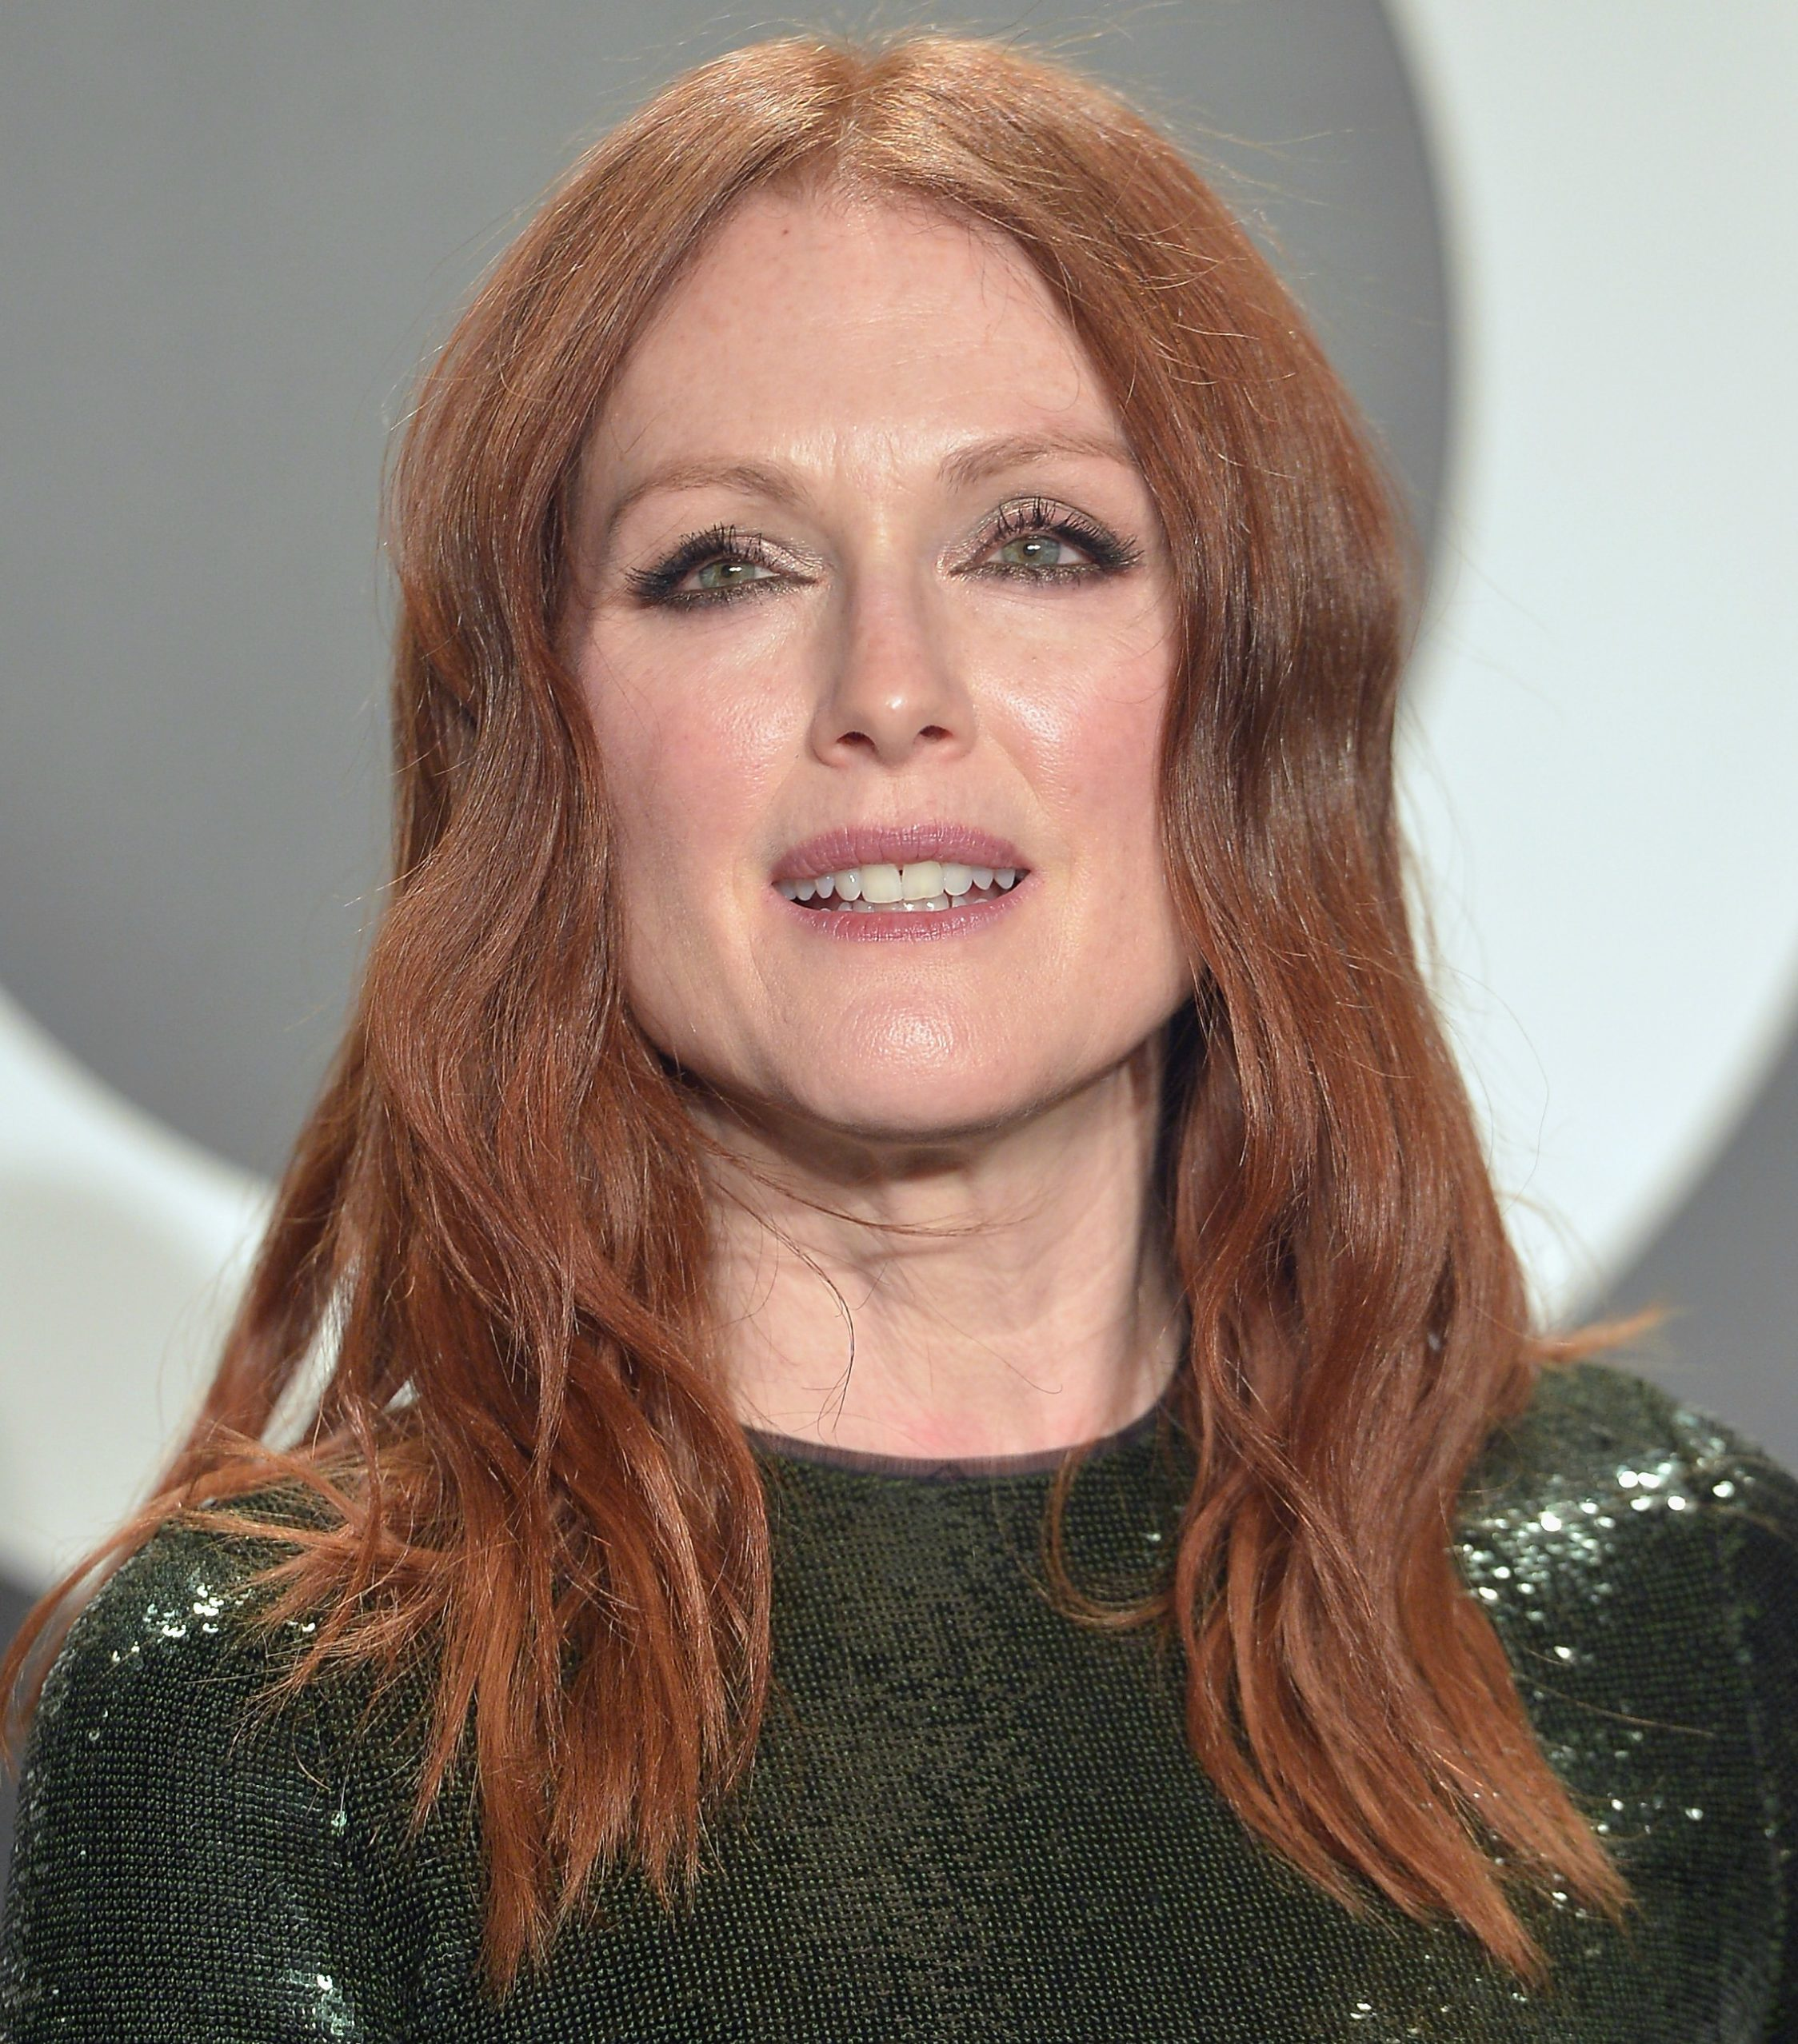 juliannemoore